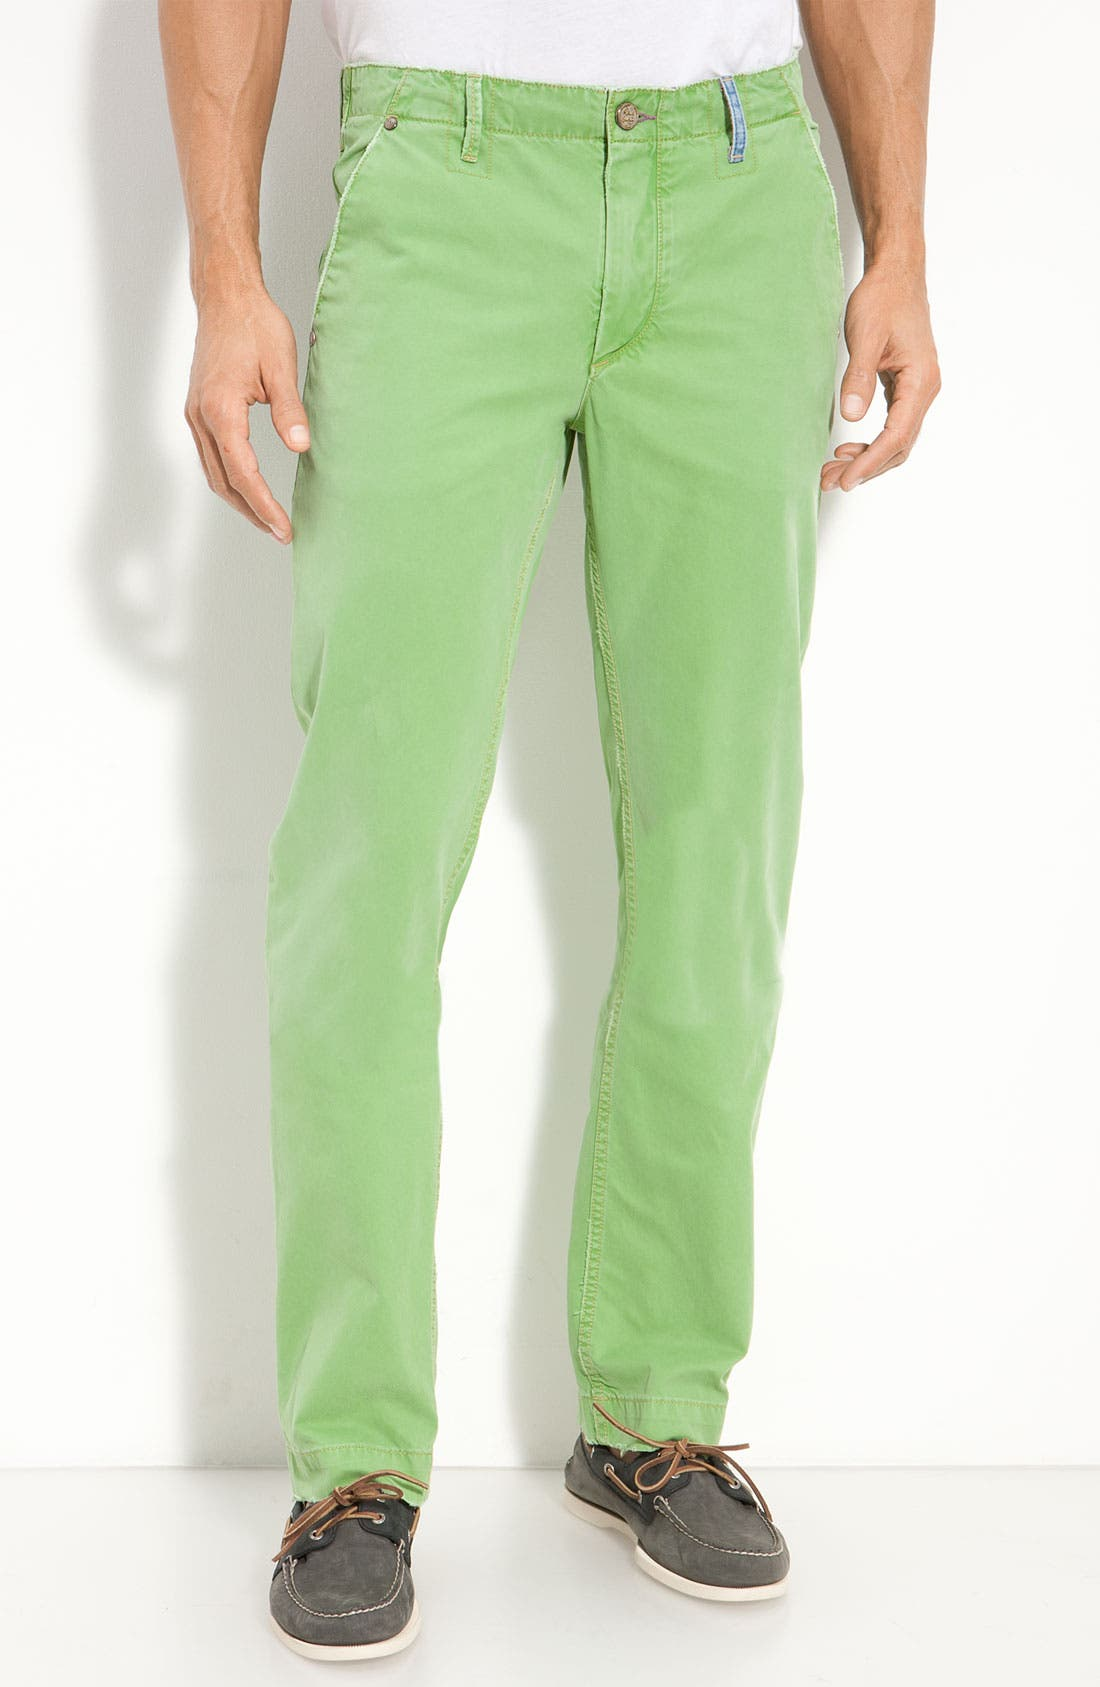 Main Image - Robert Graham Jeans 'Yates' Classic Fit Pants